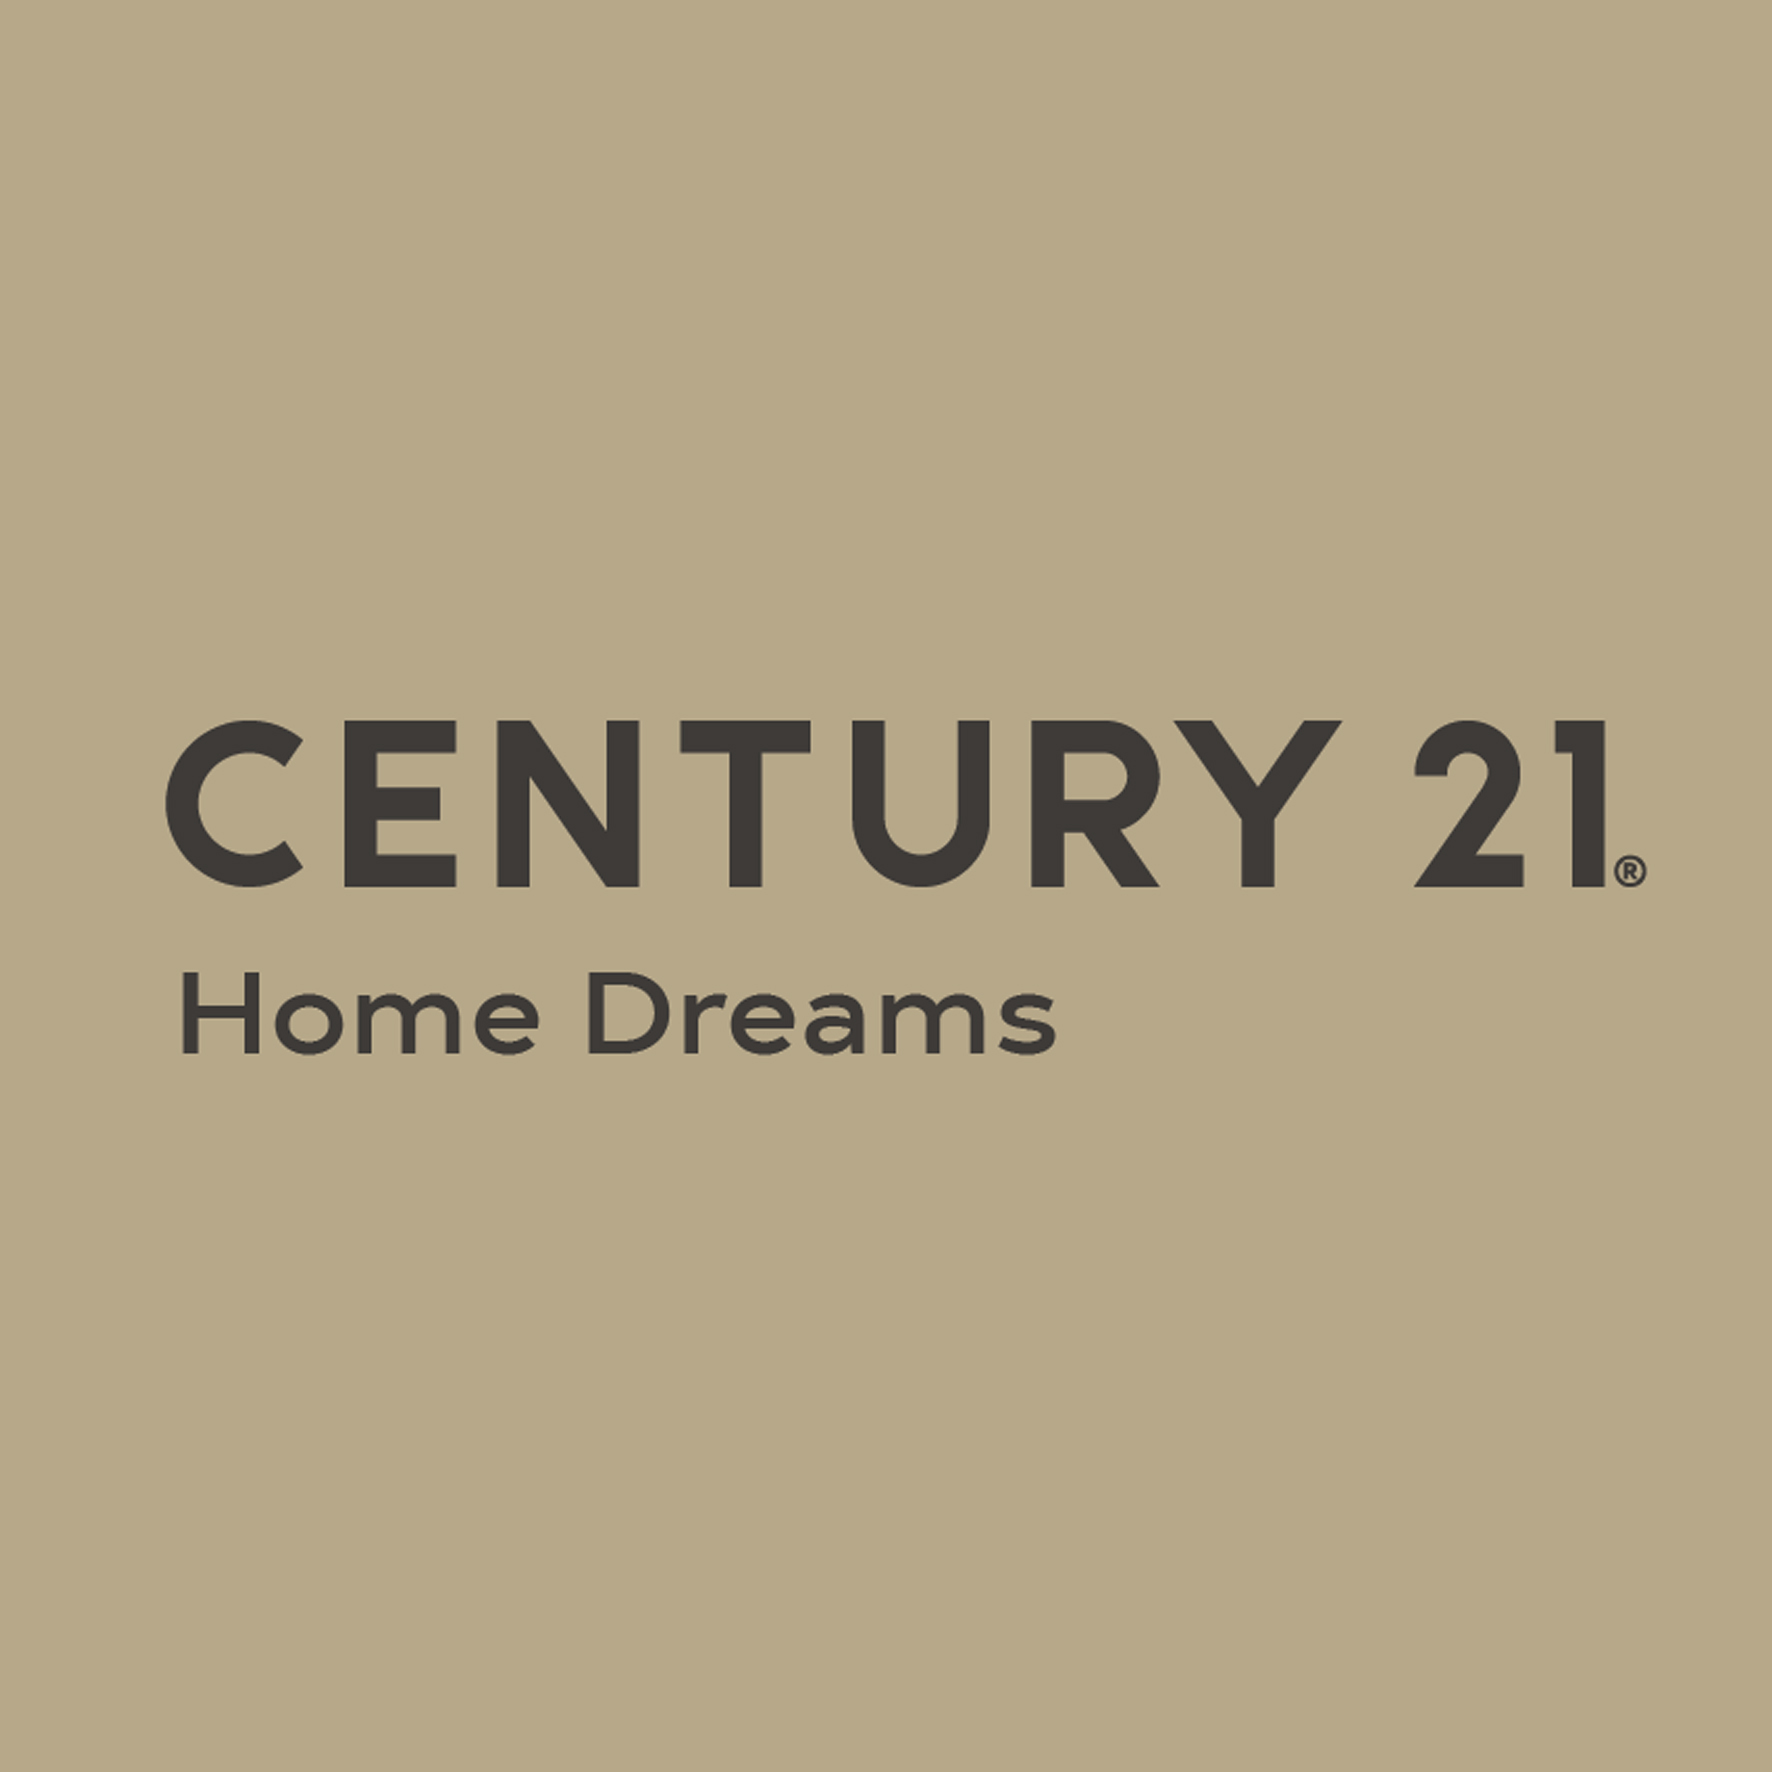 Century 21 Home Dreams